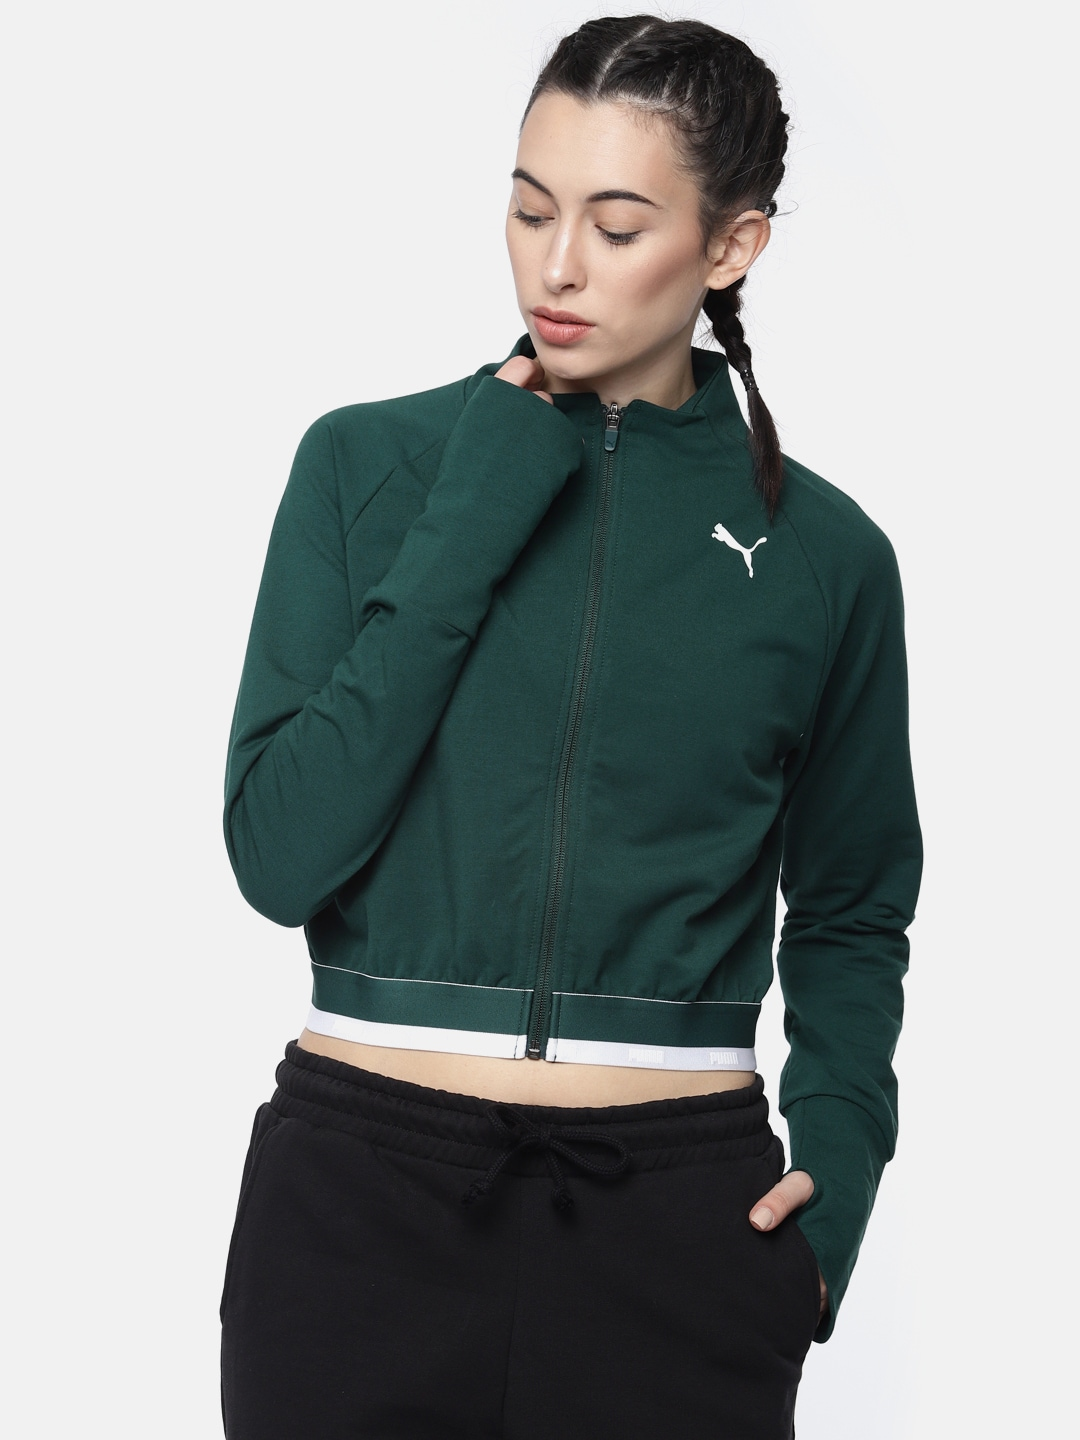 3d1e53728d31 Puma Jacket - Buy original Puma Jackets Online in India